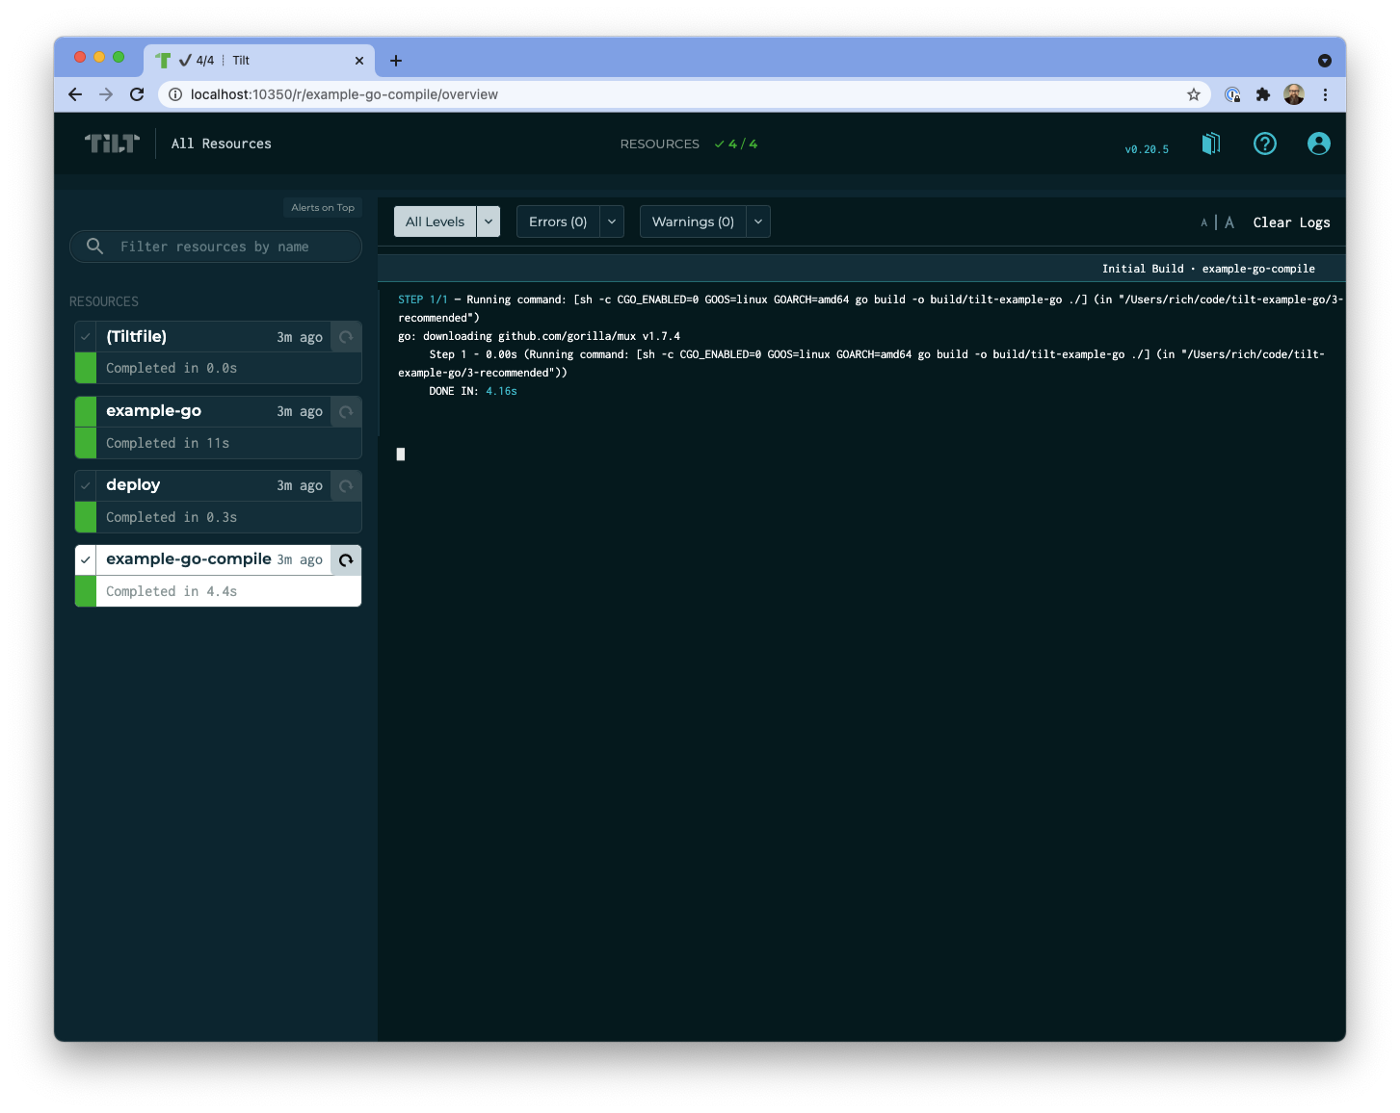 Screenshot of the Tilt UI showing the log entries for a resource